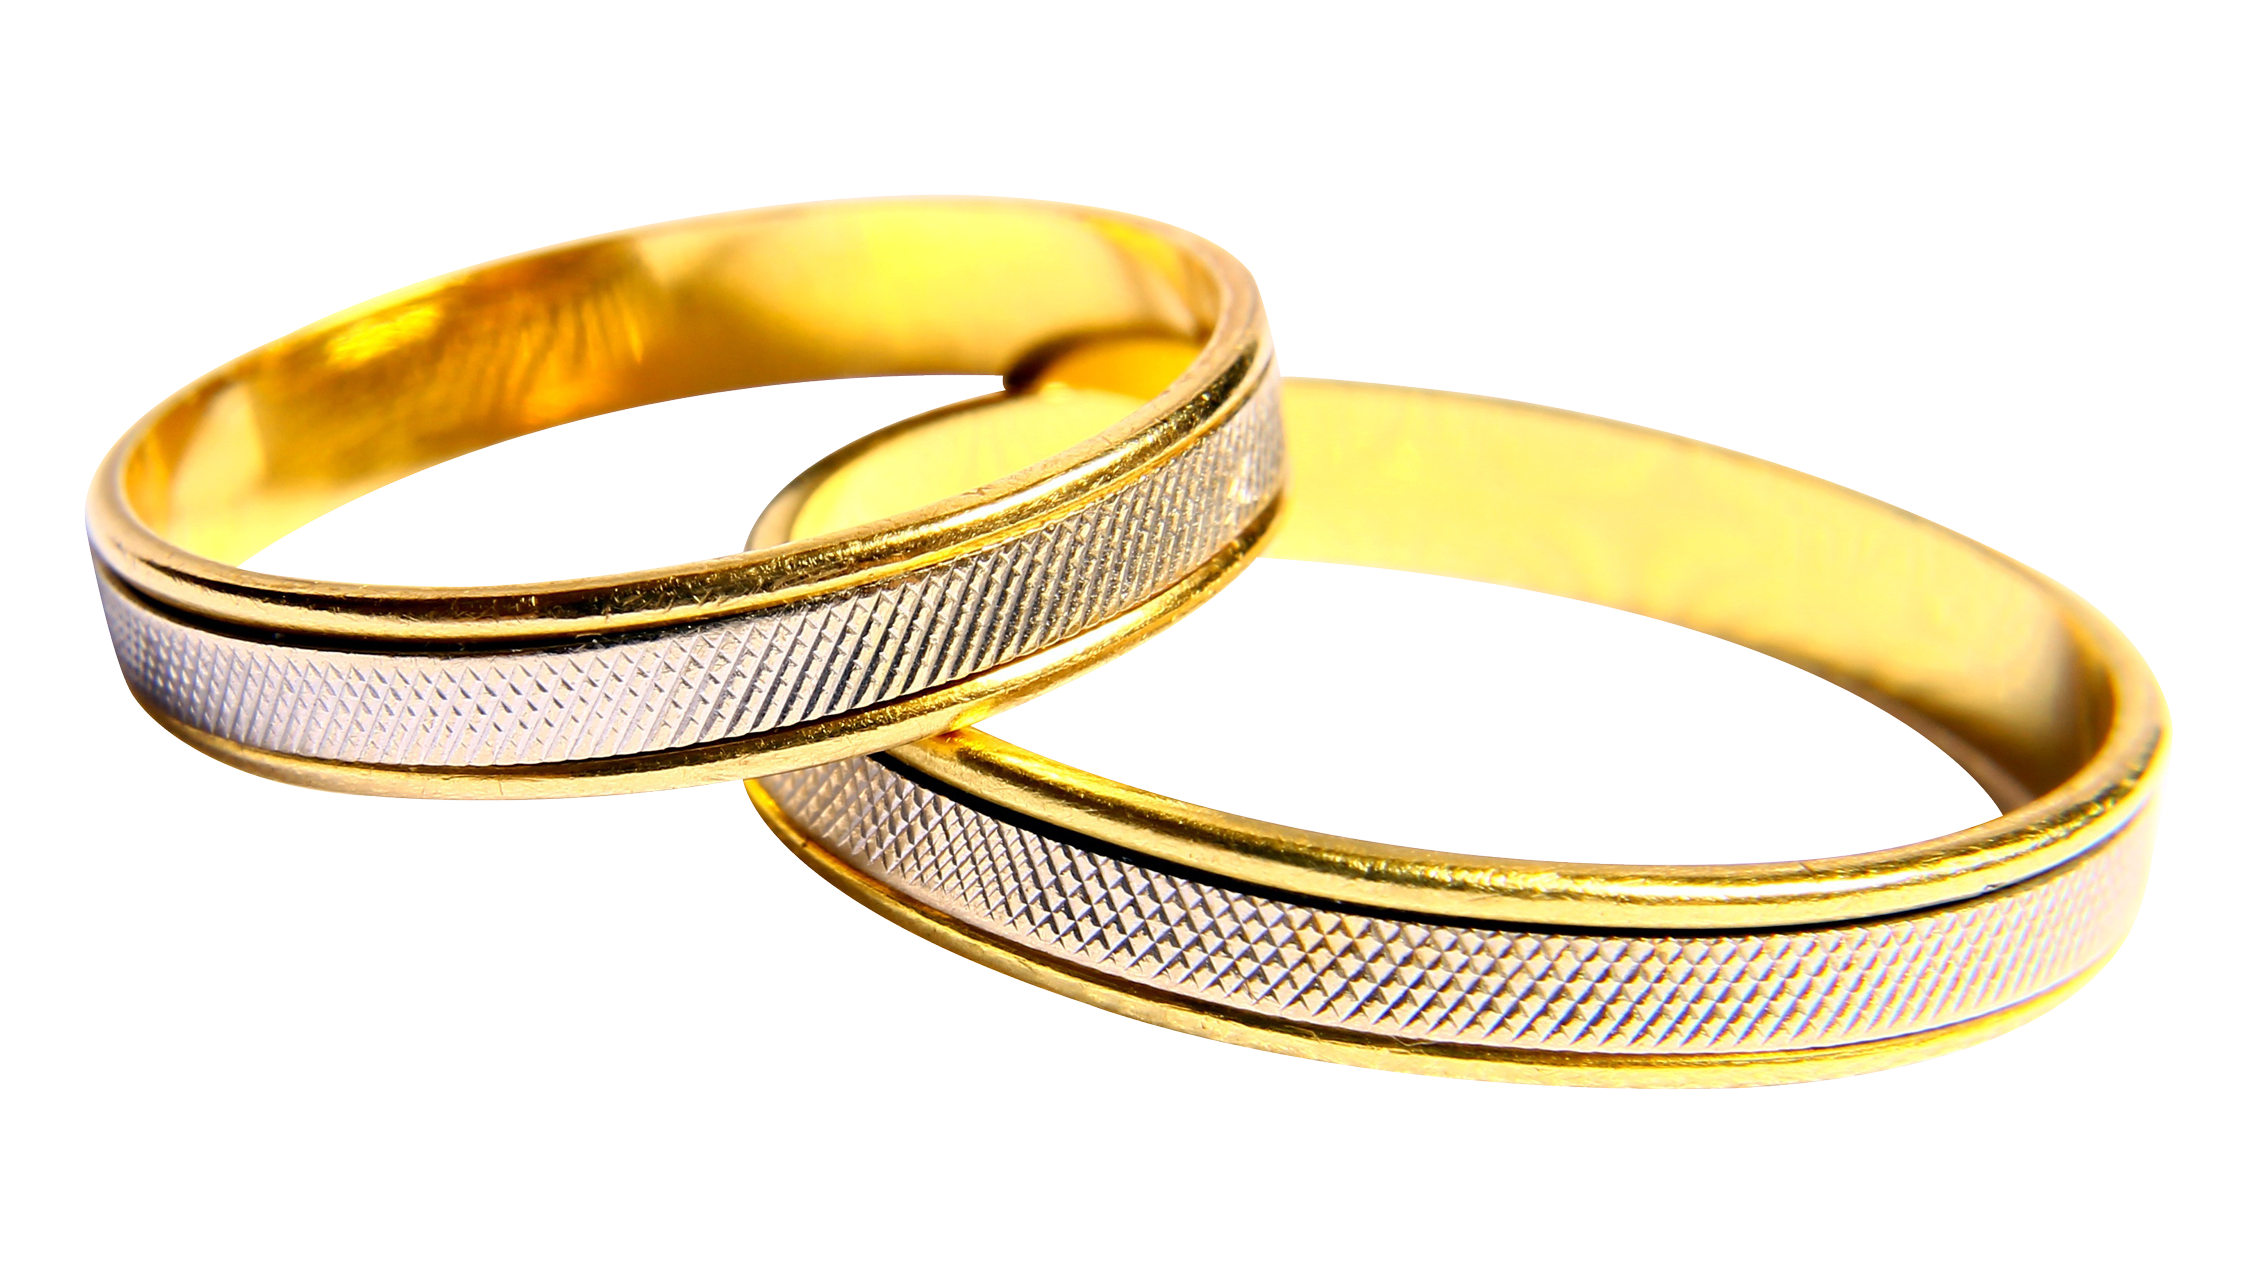 Wedding rings png without background. Image purepng free transparent